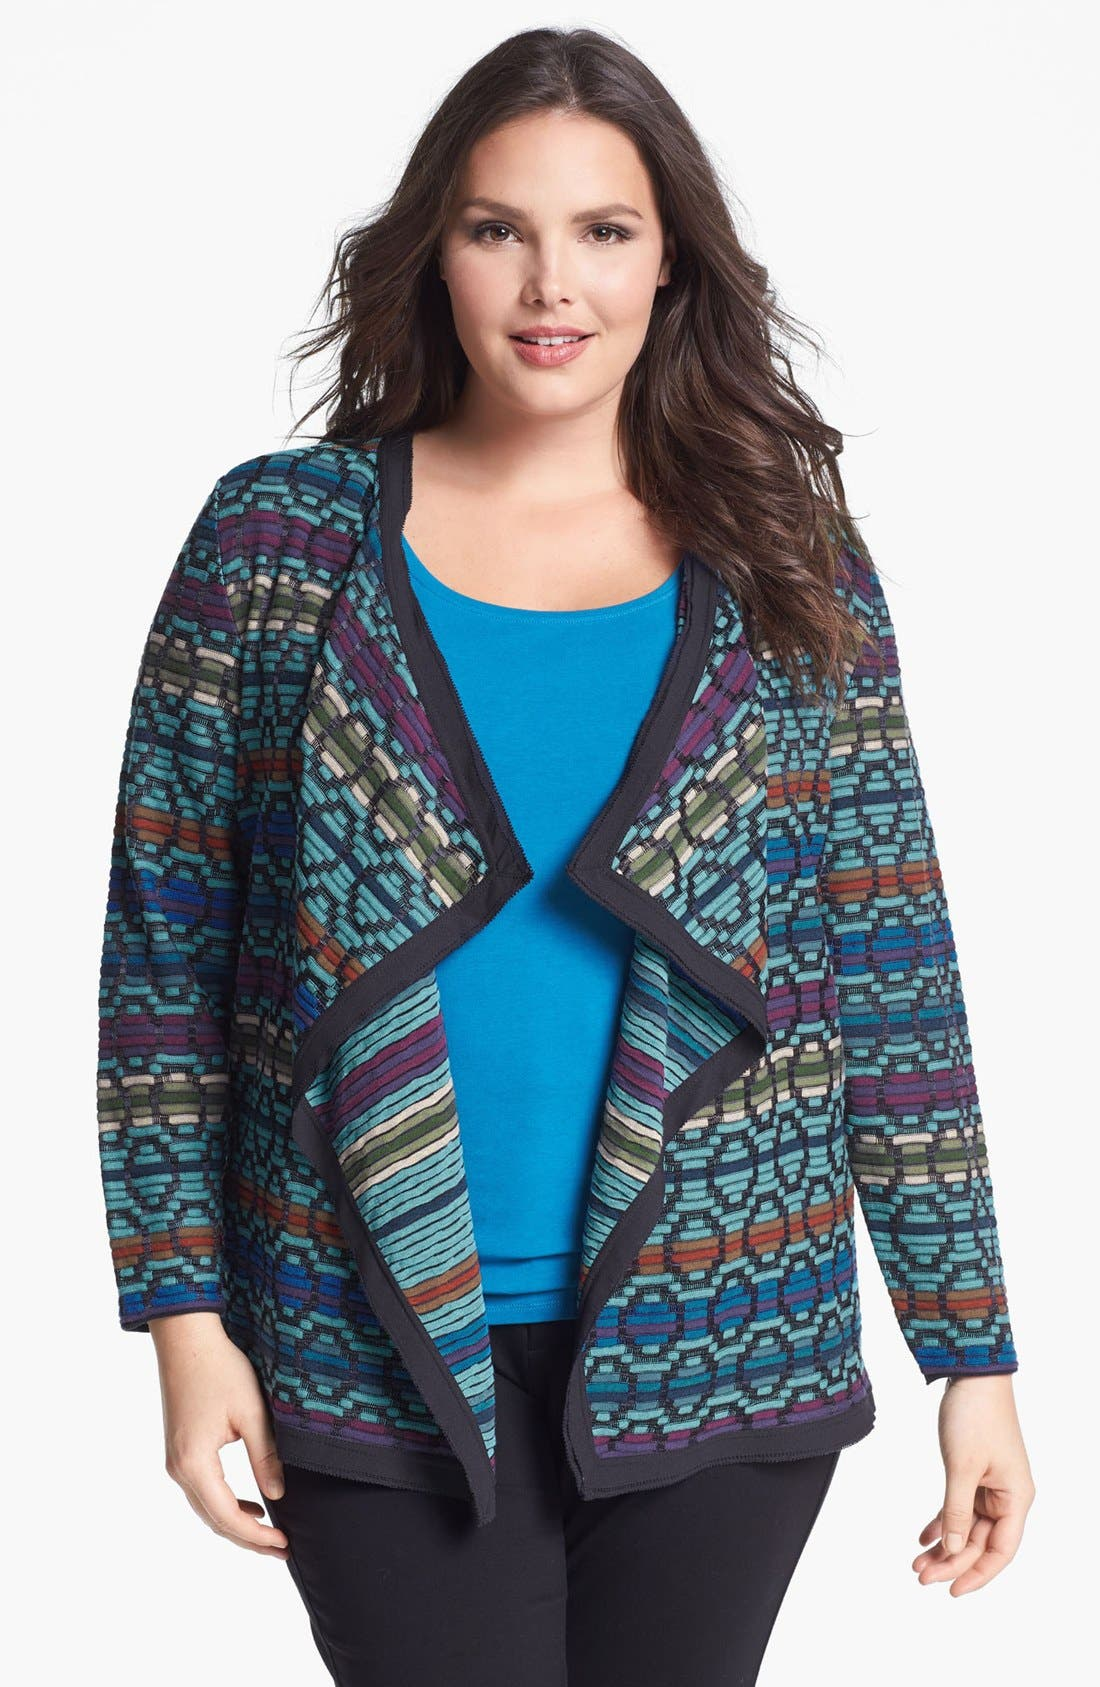 Main Image - NIC+ZOE 'Dots & Dashes' Drape Front Cardigan (Plus Size)